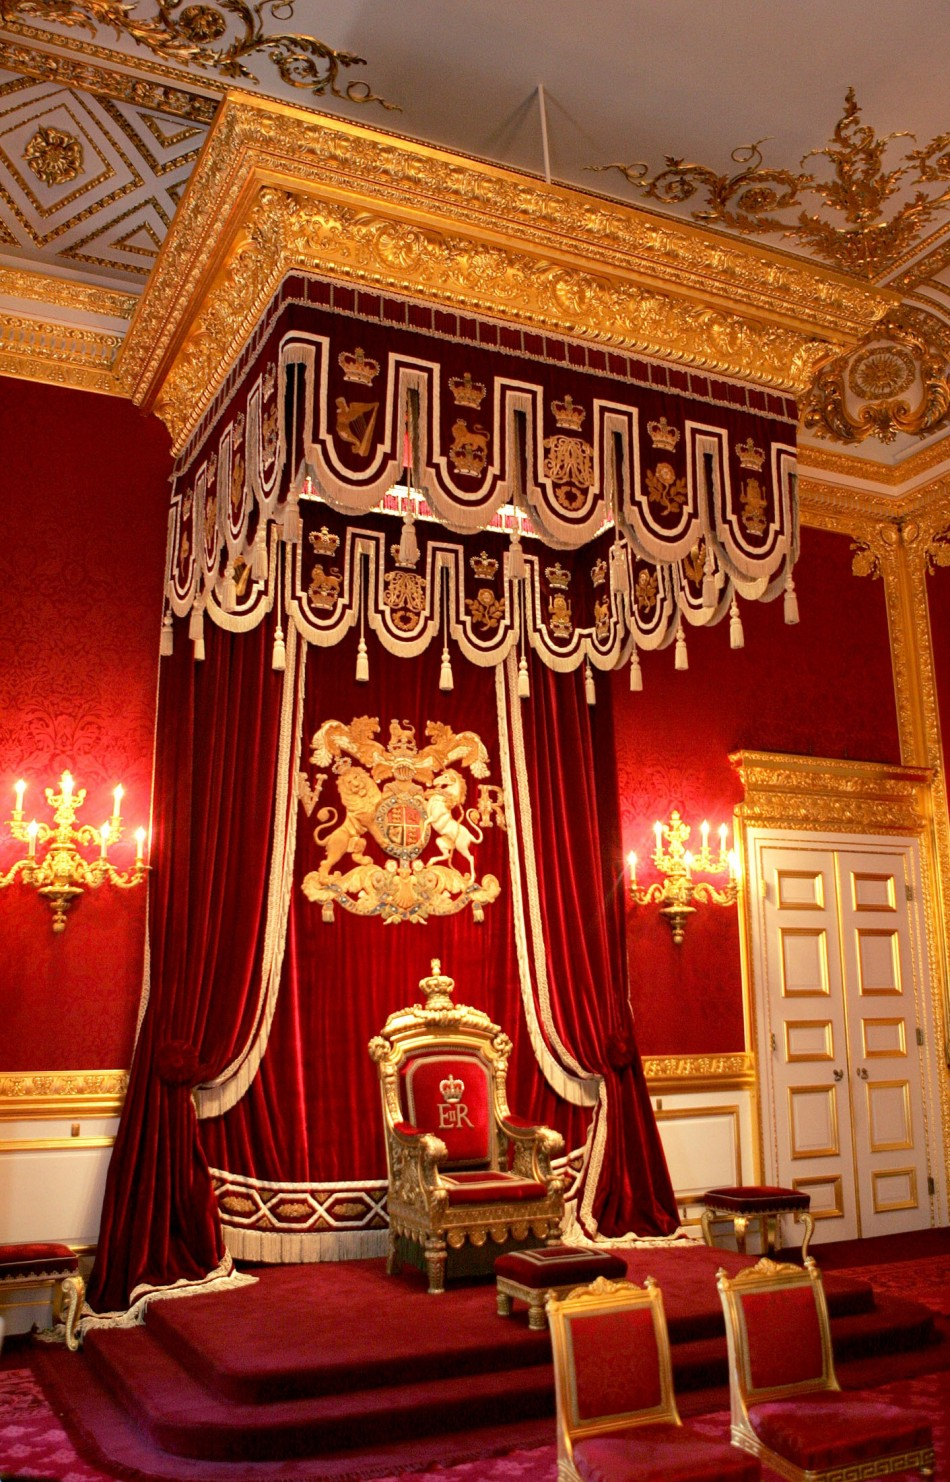 The throne is seen in the Throne Room at St. James's Palace in London